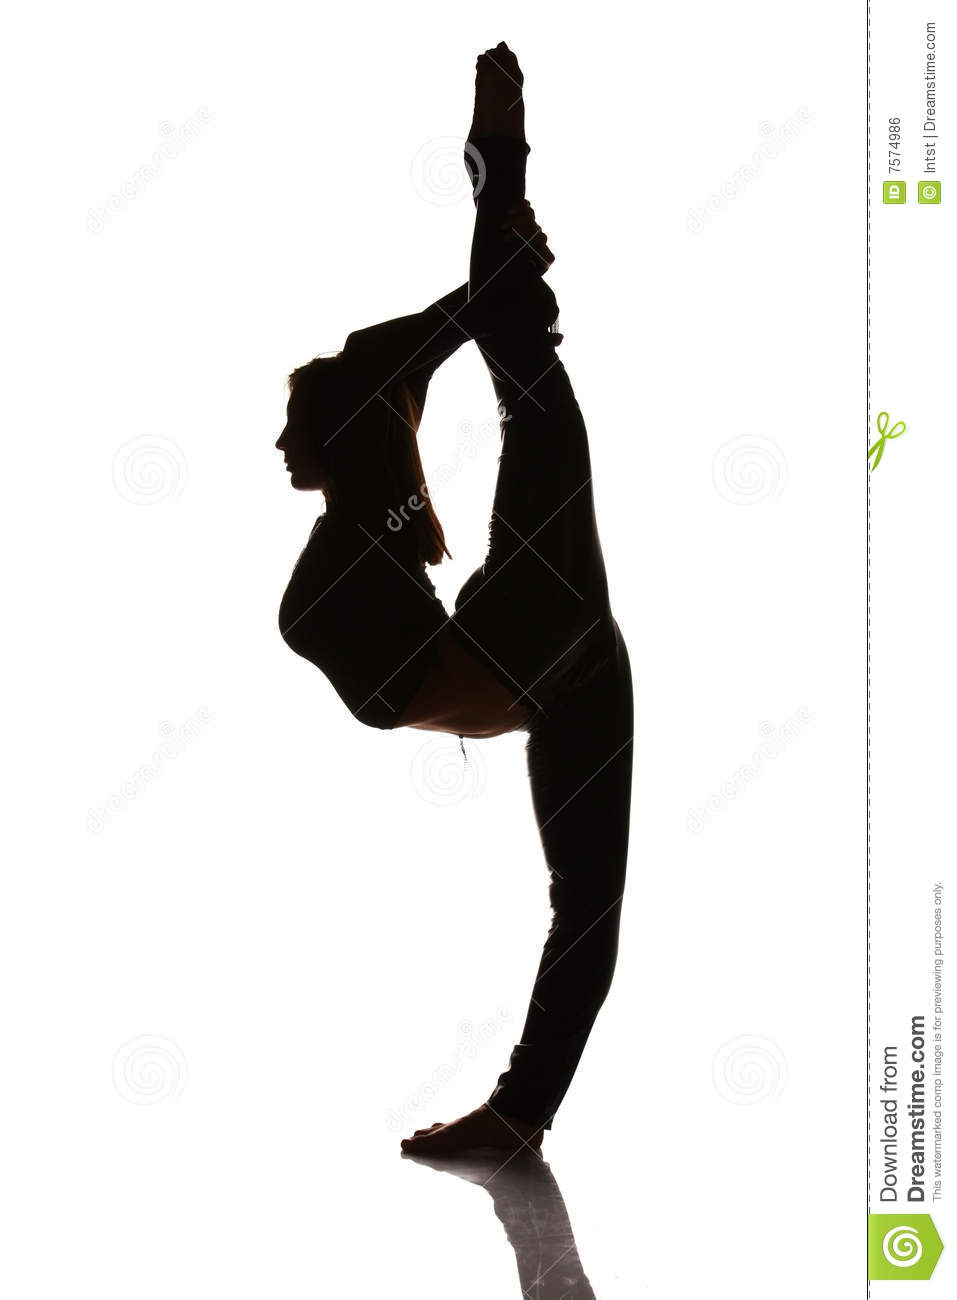 Flexible person clipart.